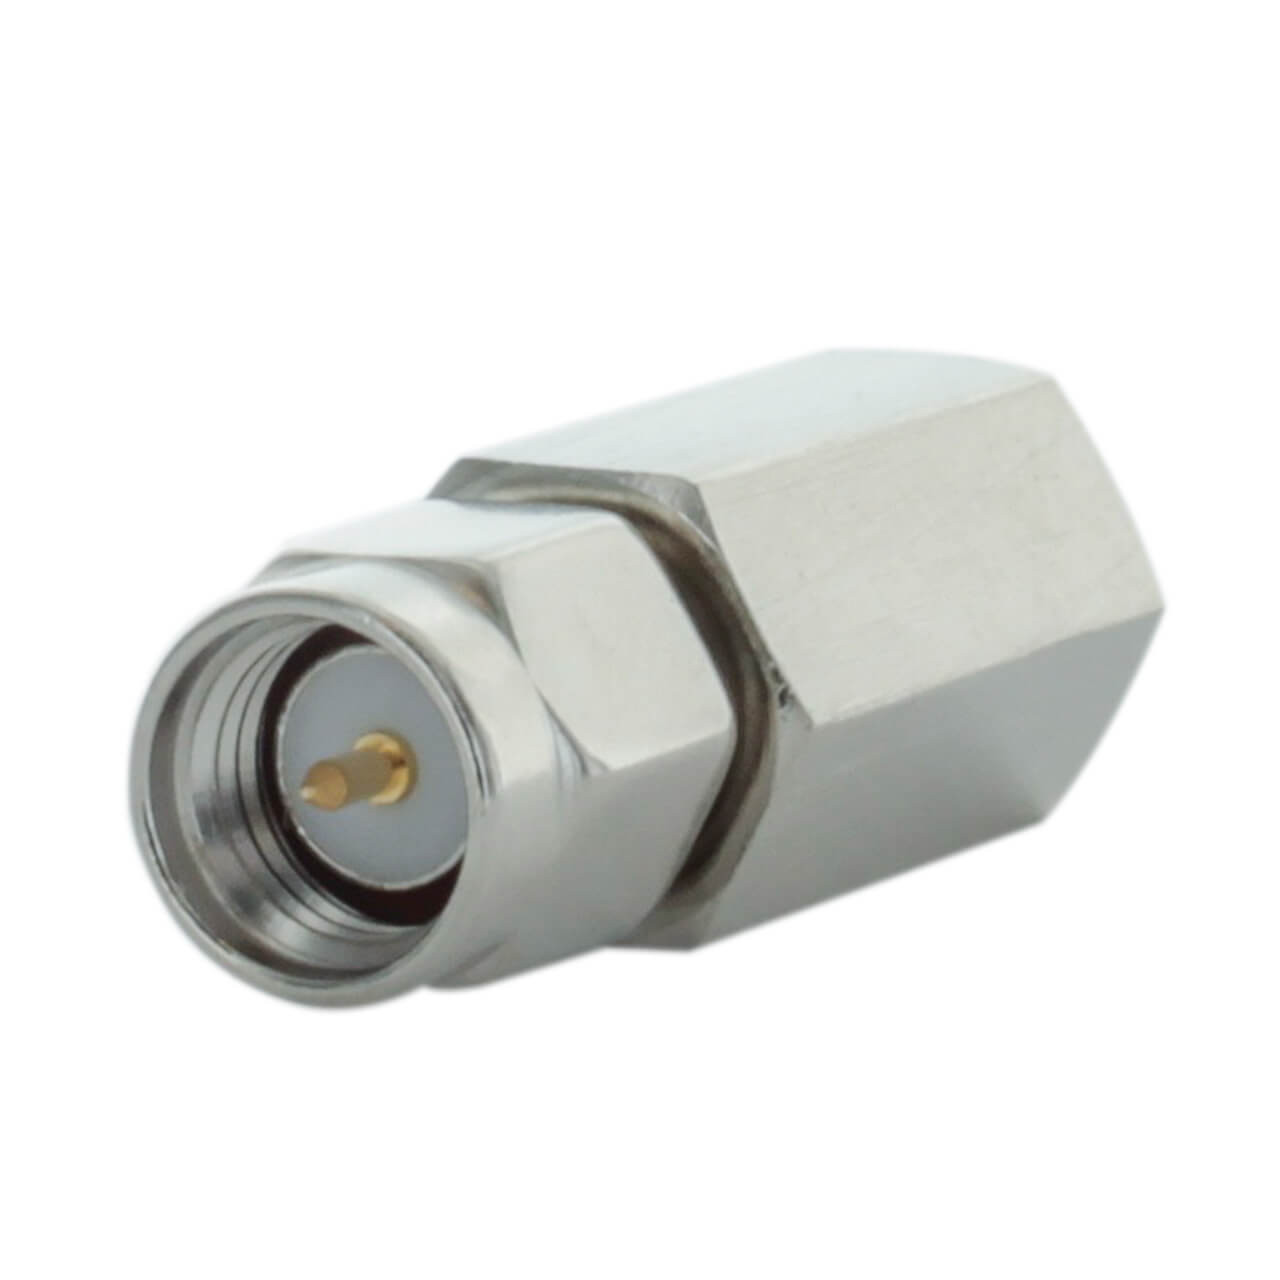 Bolton Adapter - SMA-Male to FME-Male